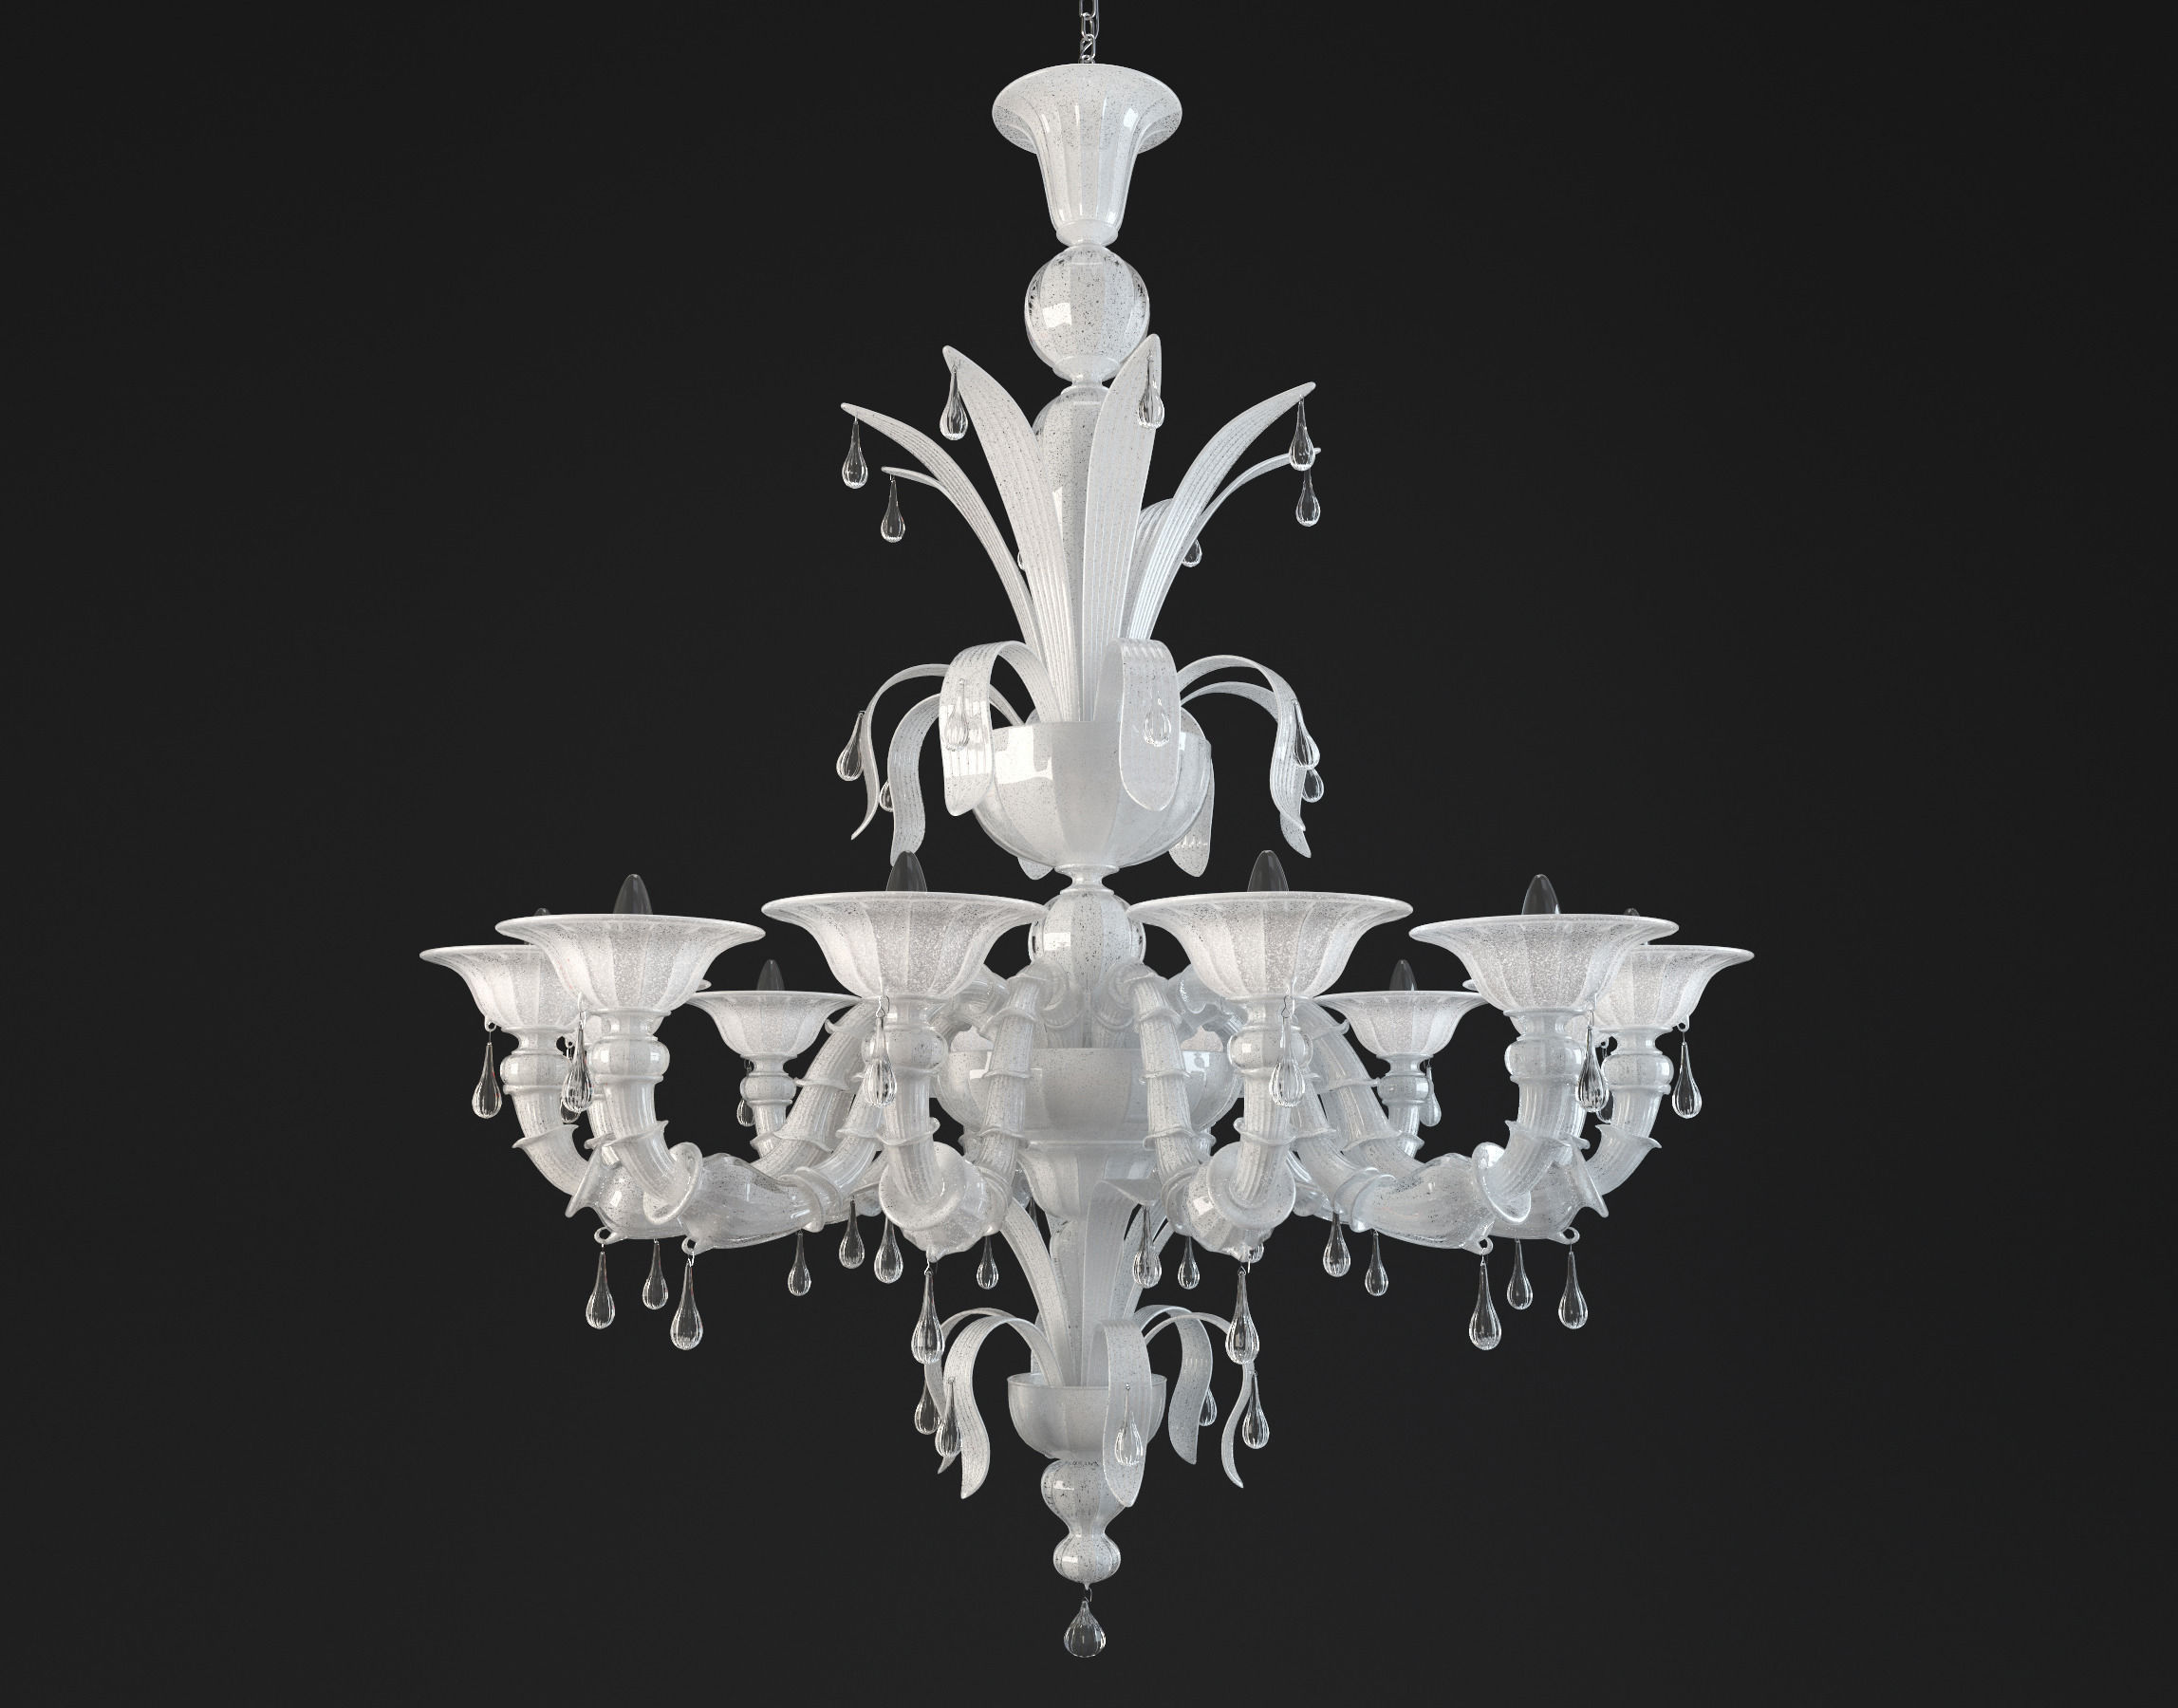 Paradiso white murano glass chandelier 3d model cgtrader paradiso white murano glass chandelier 3d model max obj mtl 1 mozeypictures Gallery